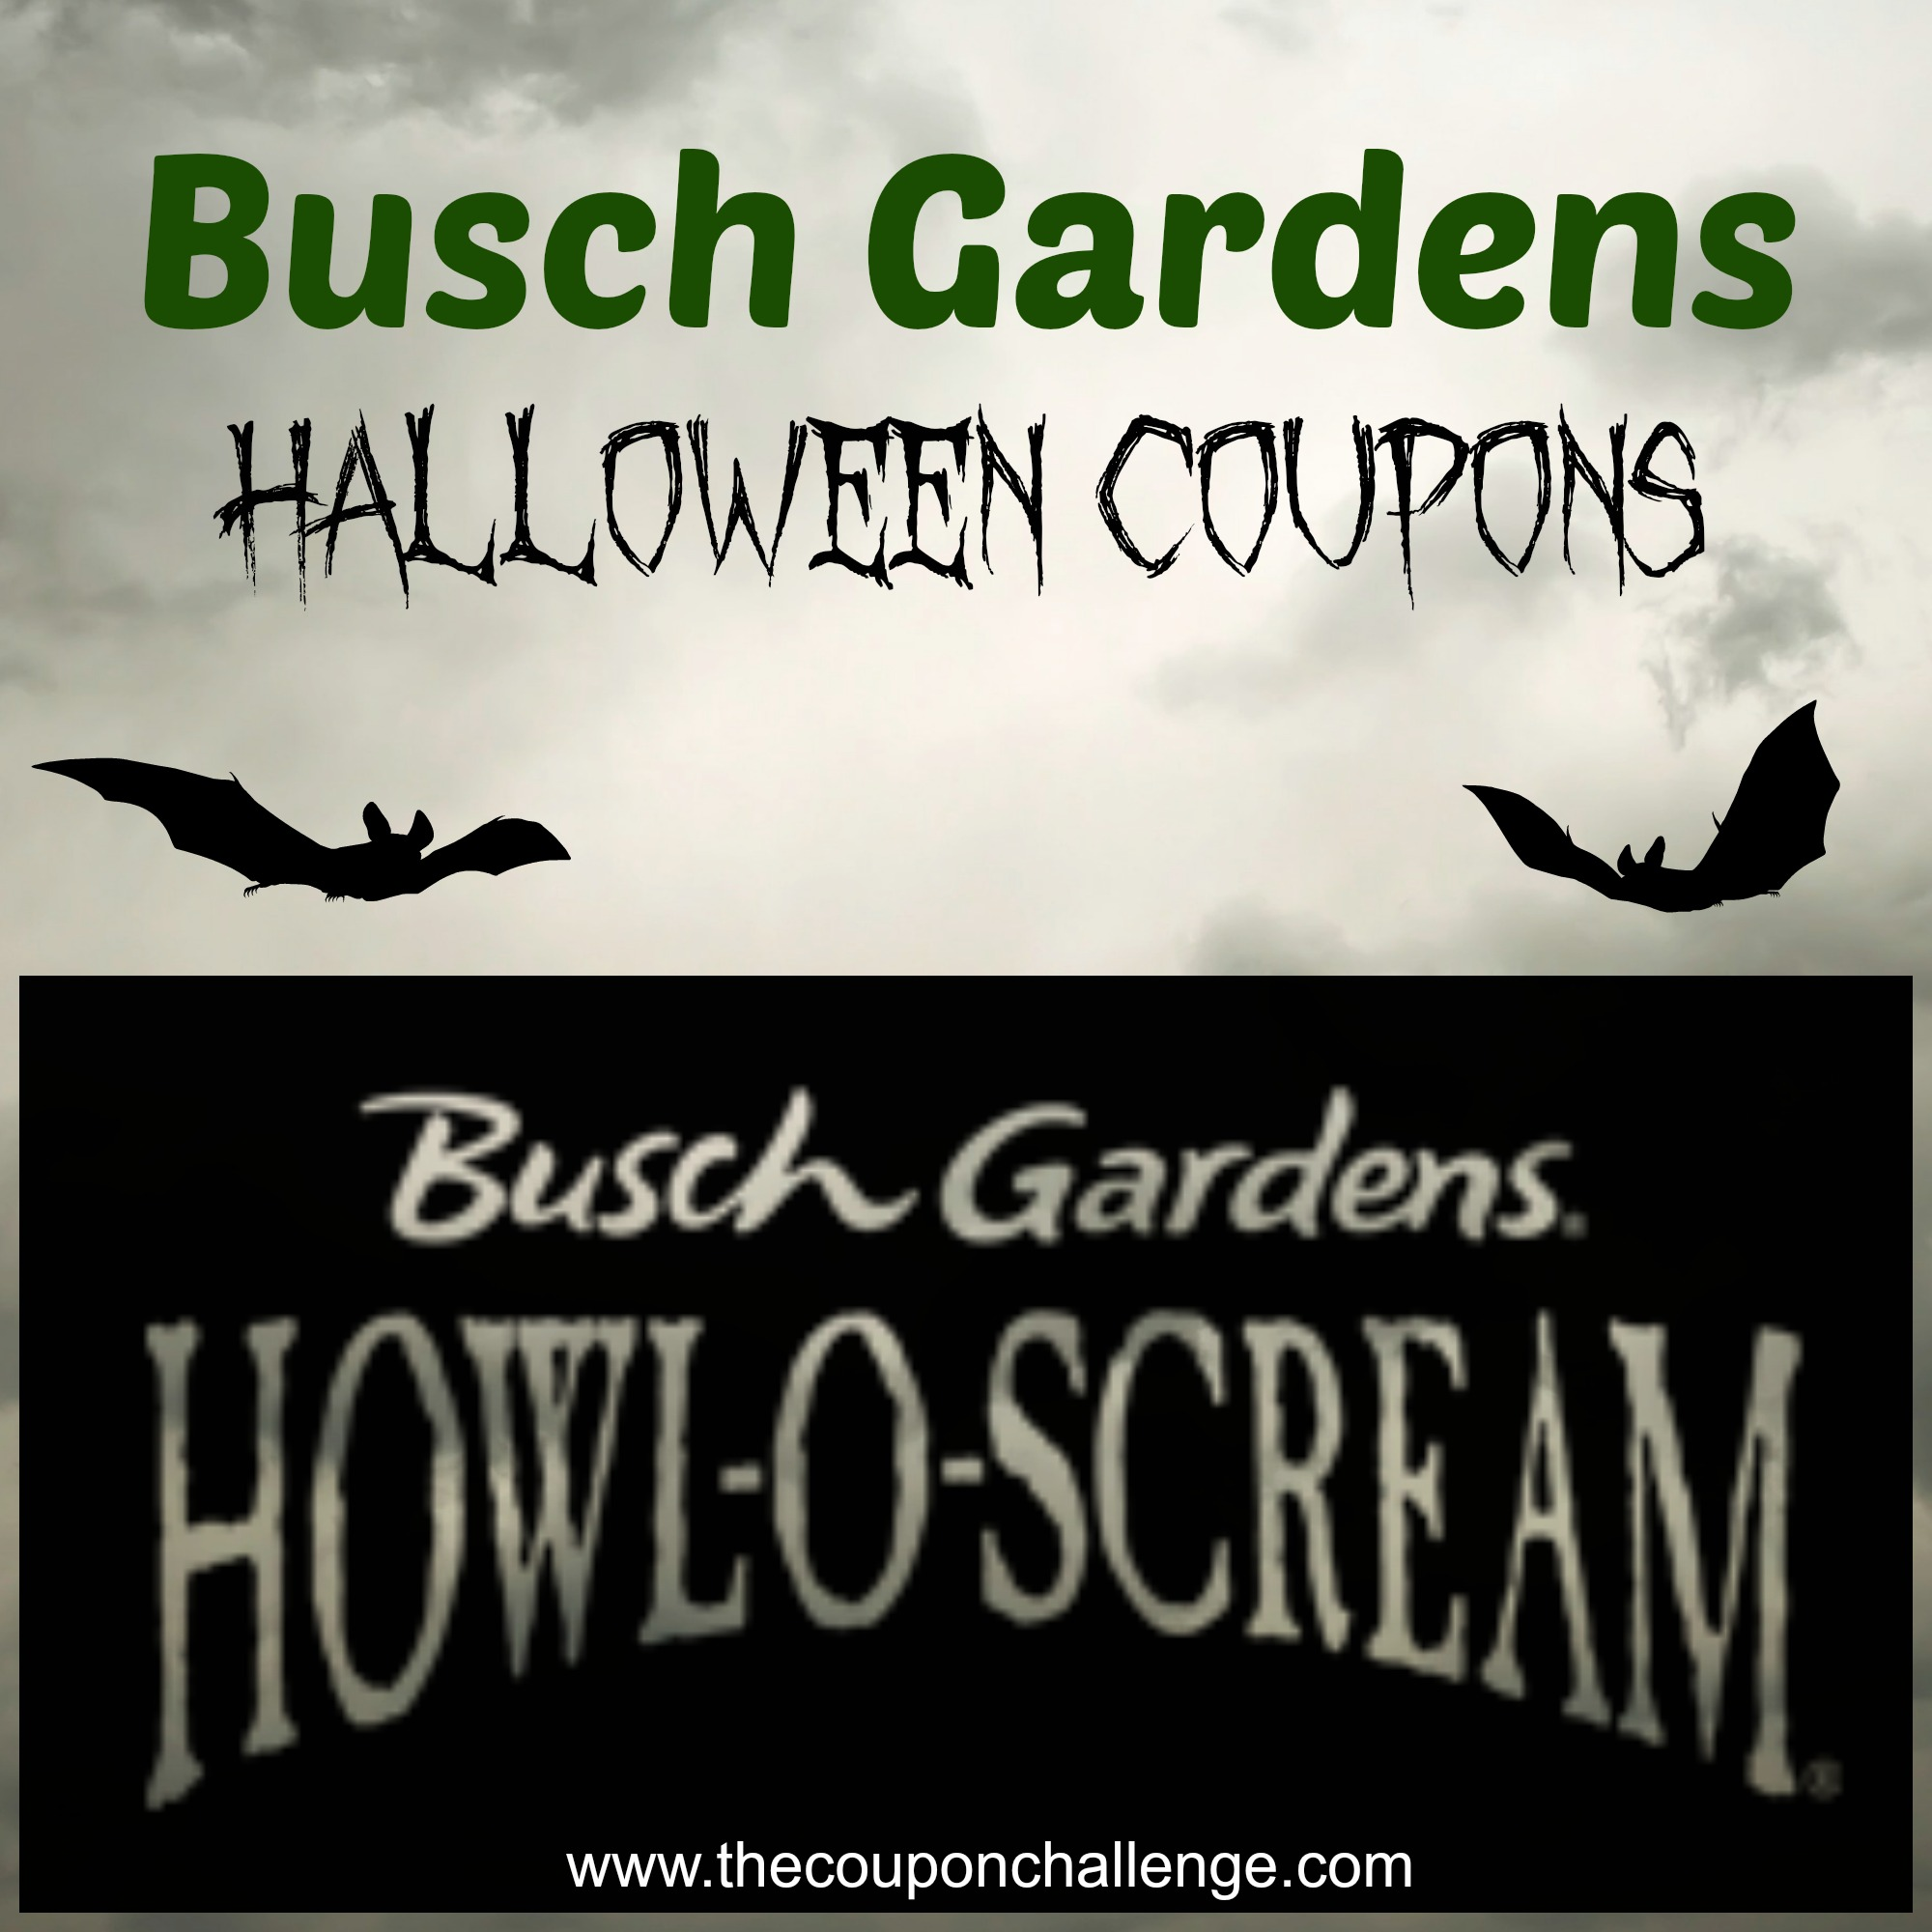 Busch gardens coupons discounts